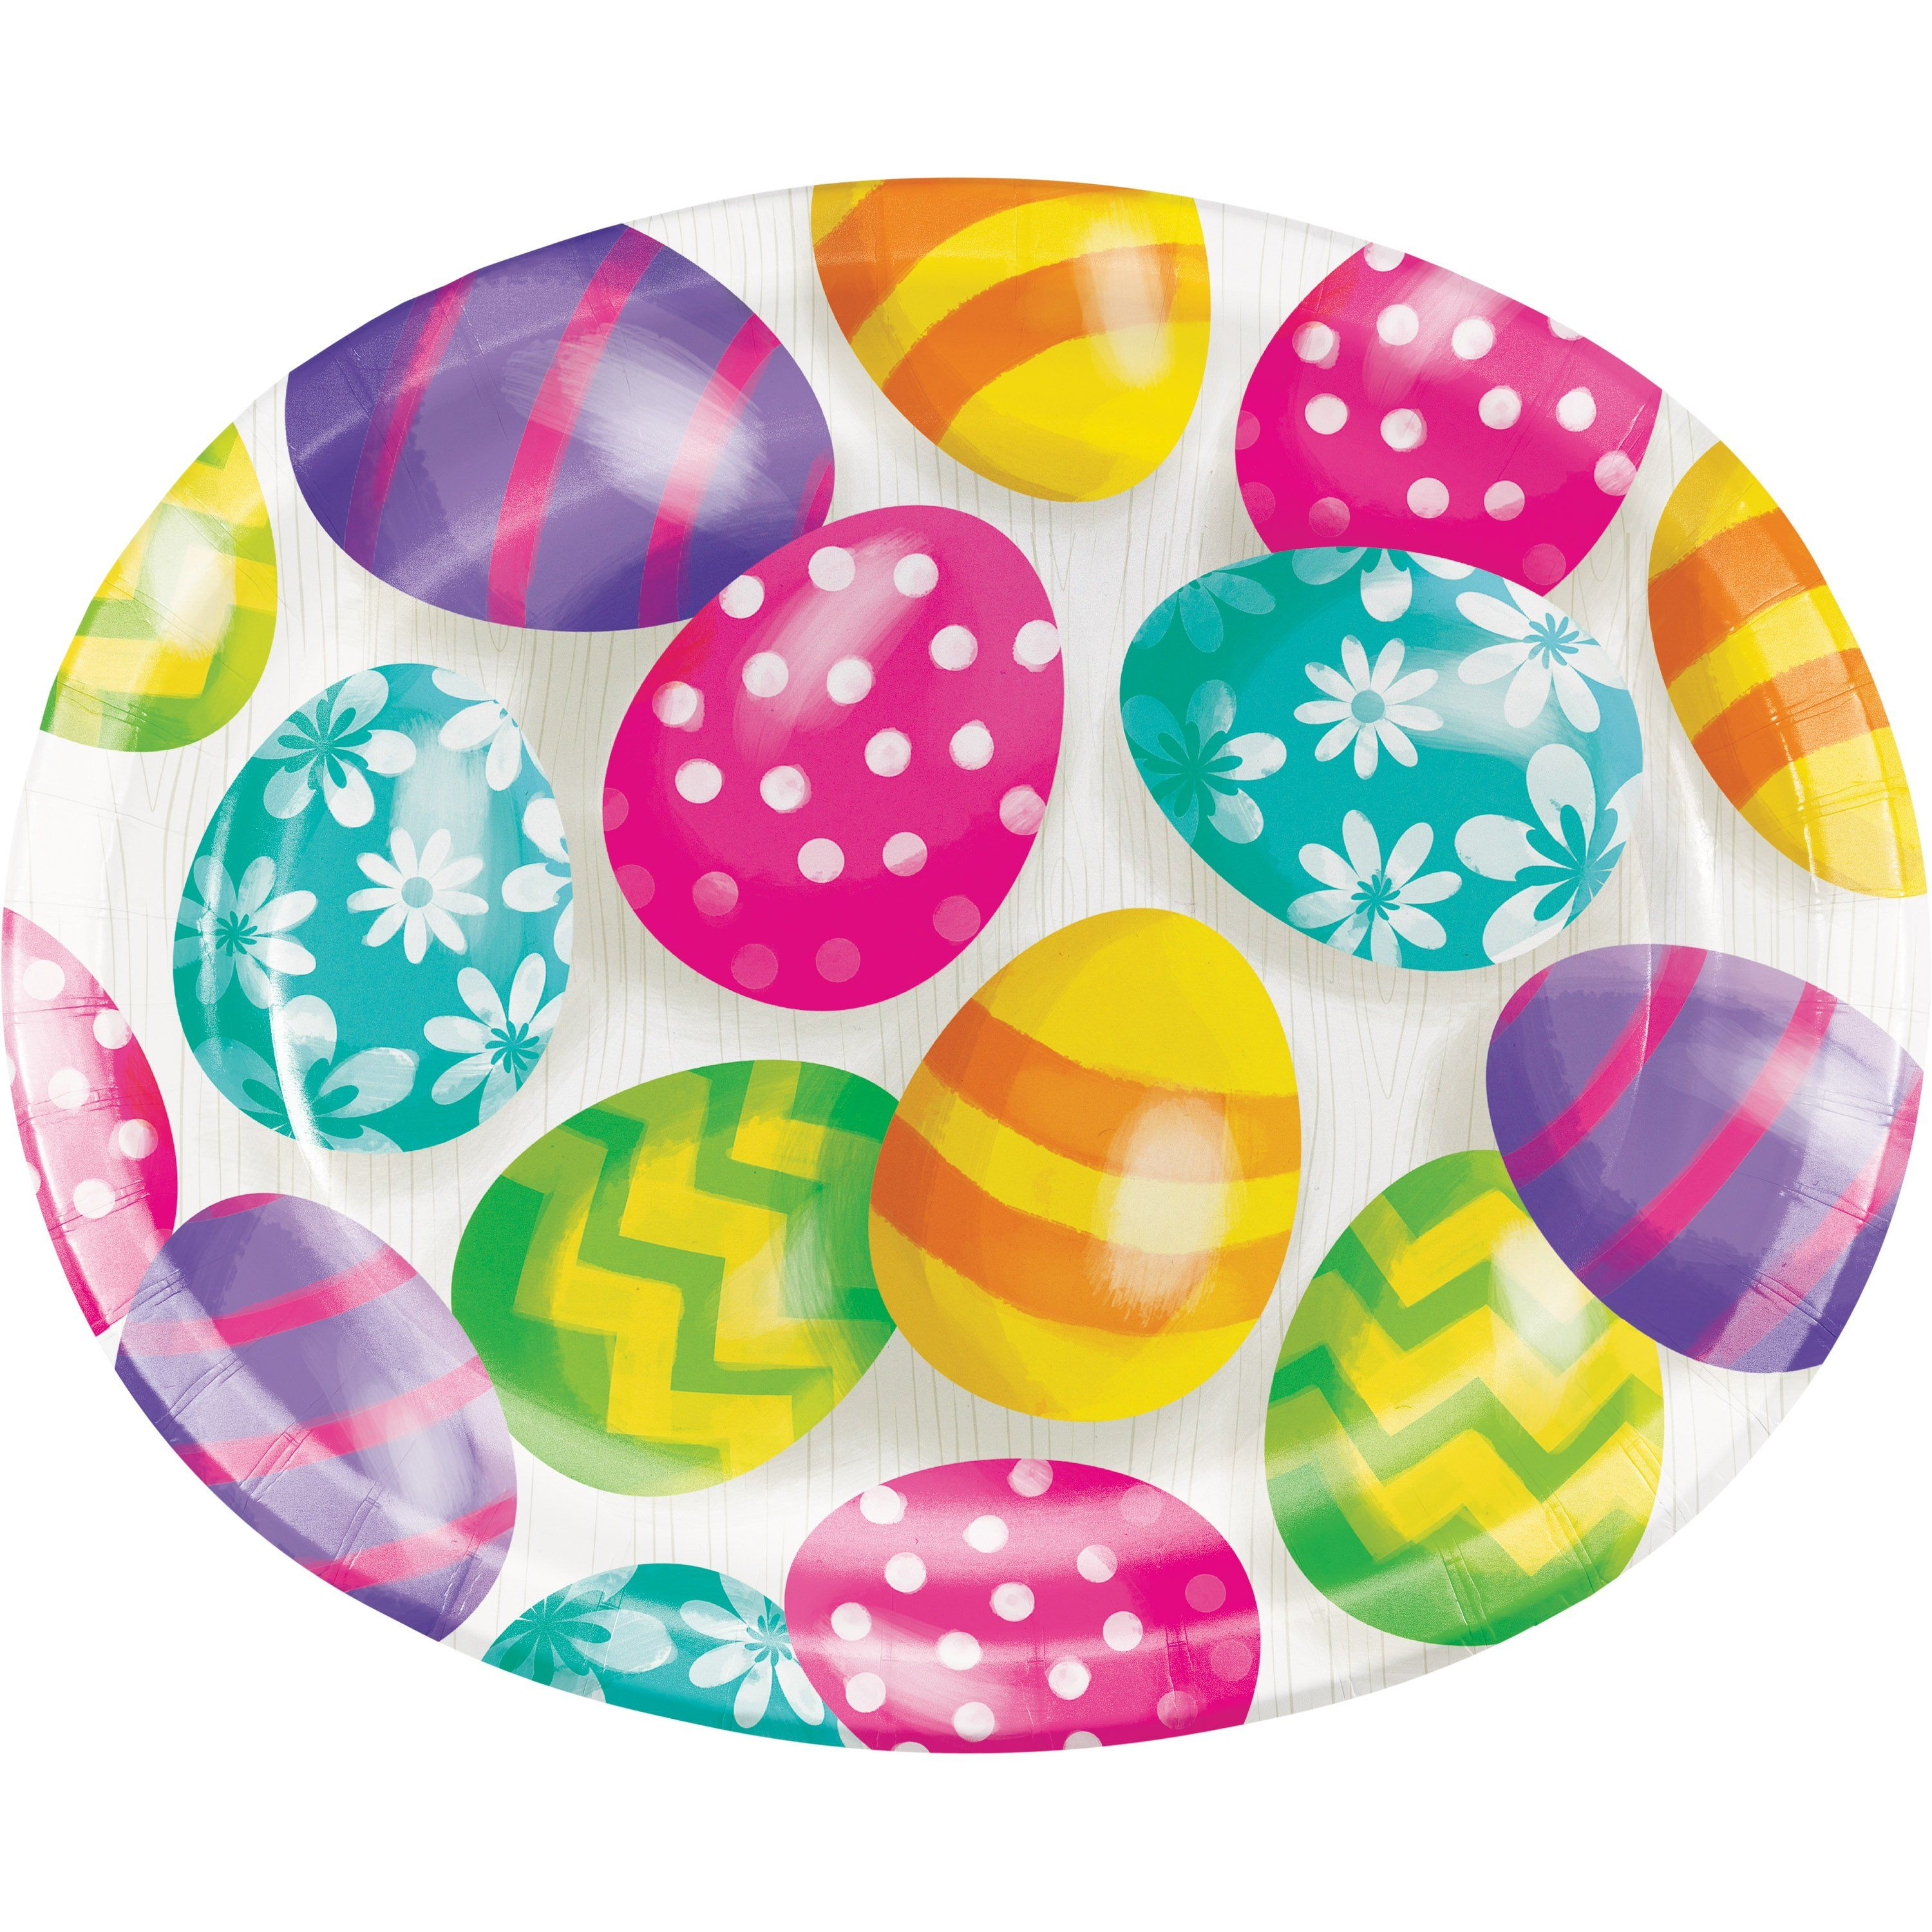 Easter Eggs 10 L X 12 W Oval Platter Printed Plate Foil Easter Eggs Easter Egg Designs Easter Colors